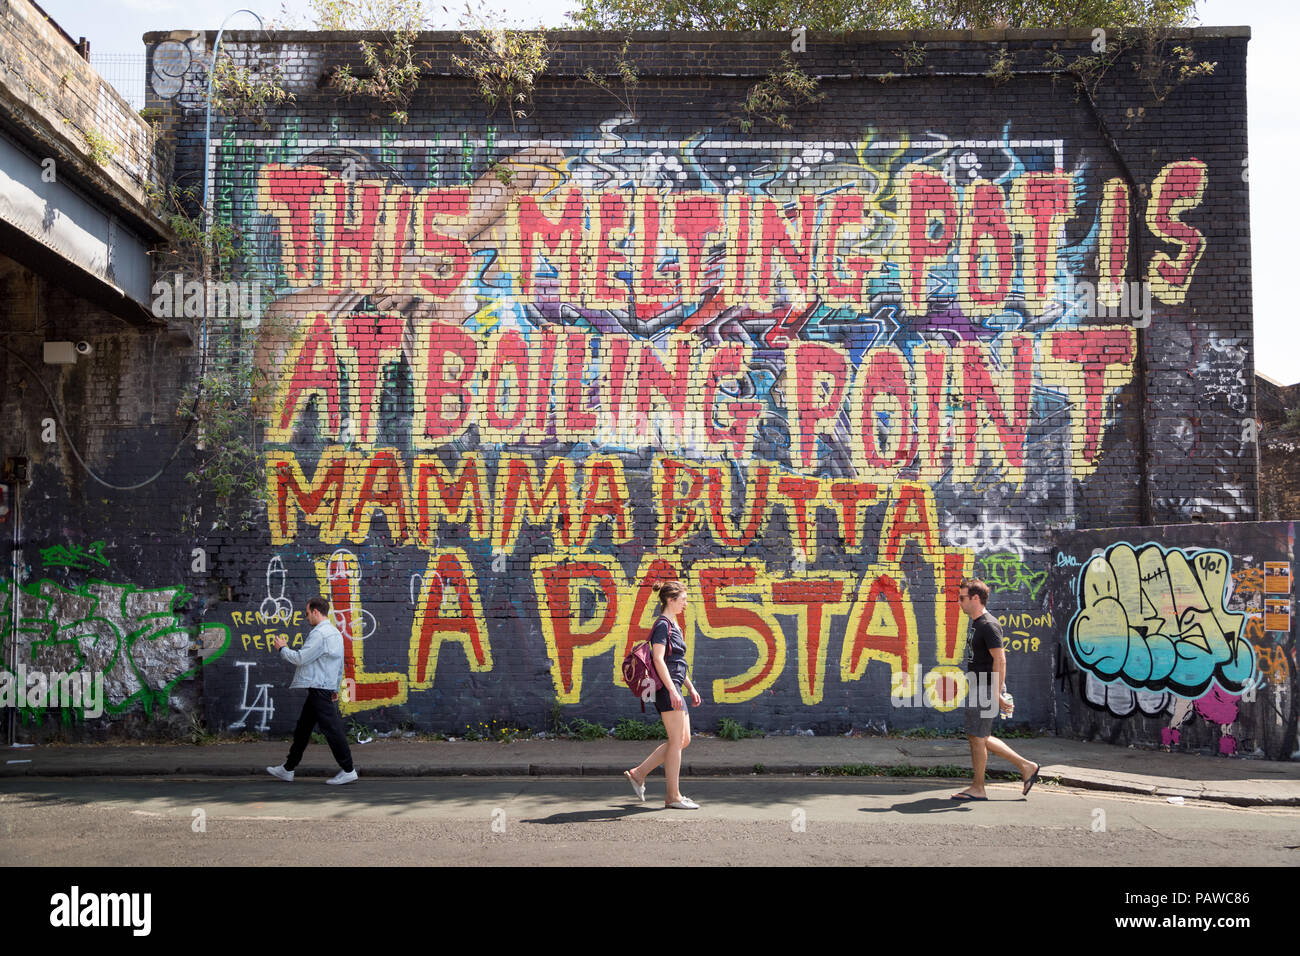 https://c8.alamy.com/comp/PAWC86/london-uk-25th-july-2018-uk-weather-this-melting-pot-is-at-boiling-point-graffiti-in-shoreditch-the-summer-heatwave-continues-with-todays-city-temperatures-expected-to-reach-31c-credit-guy-corbishleyalamy-live-news-PAWC86.jpg